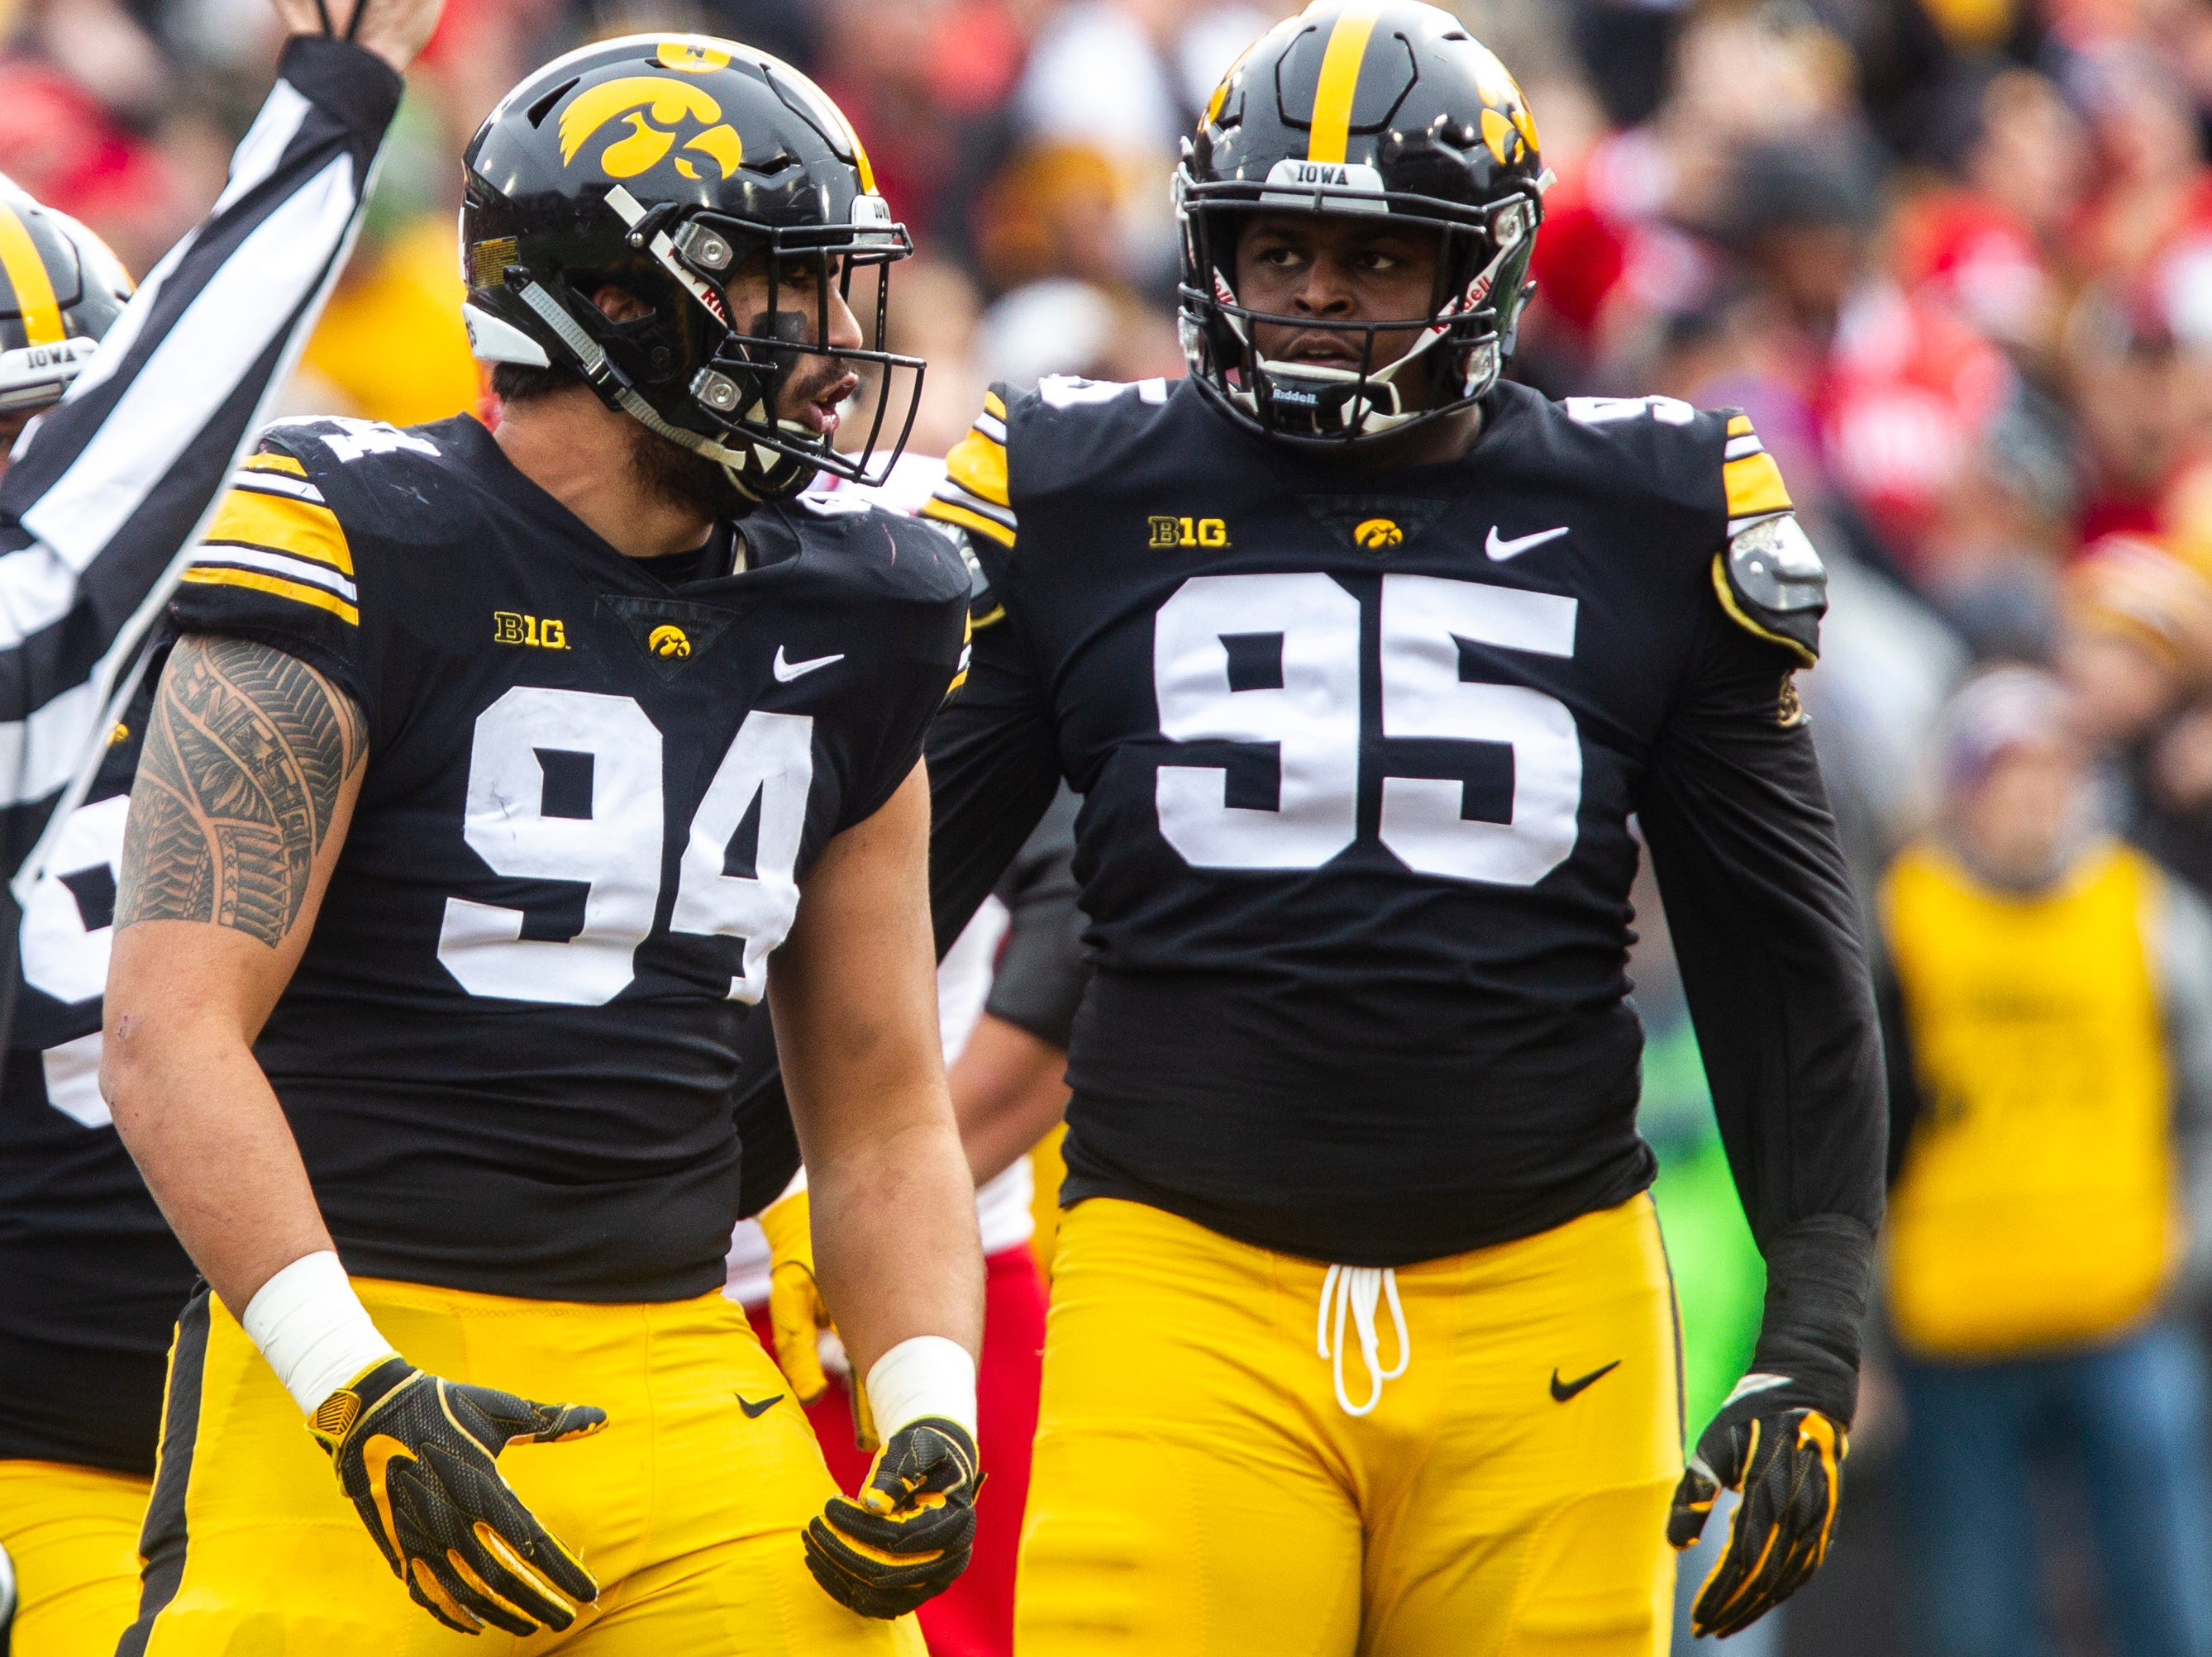 Iowa defensive end A.J. Epenesa (94) celebrates a sack with Iowa defensive lineman Cedrick Lattimore (95) during a Big Ten Conference NCAA football game on Friday, Nov. 23, 2018, at Kinnick Stadium in Iowa City.